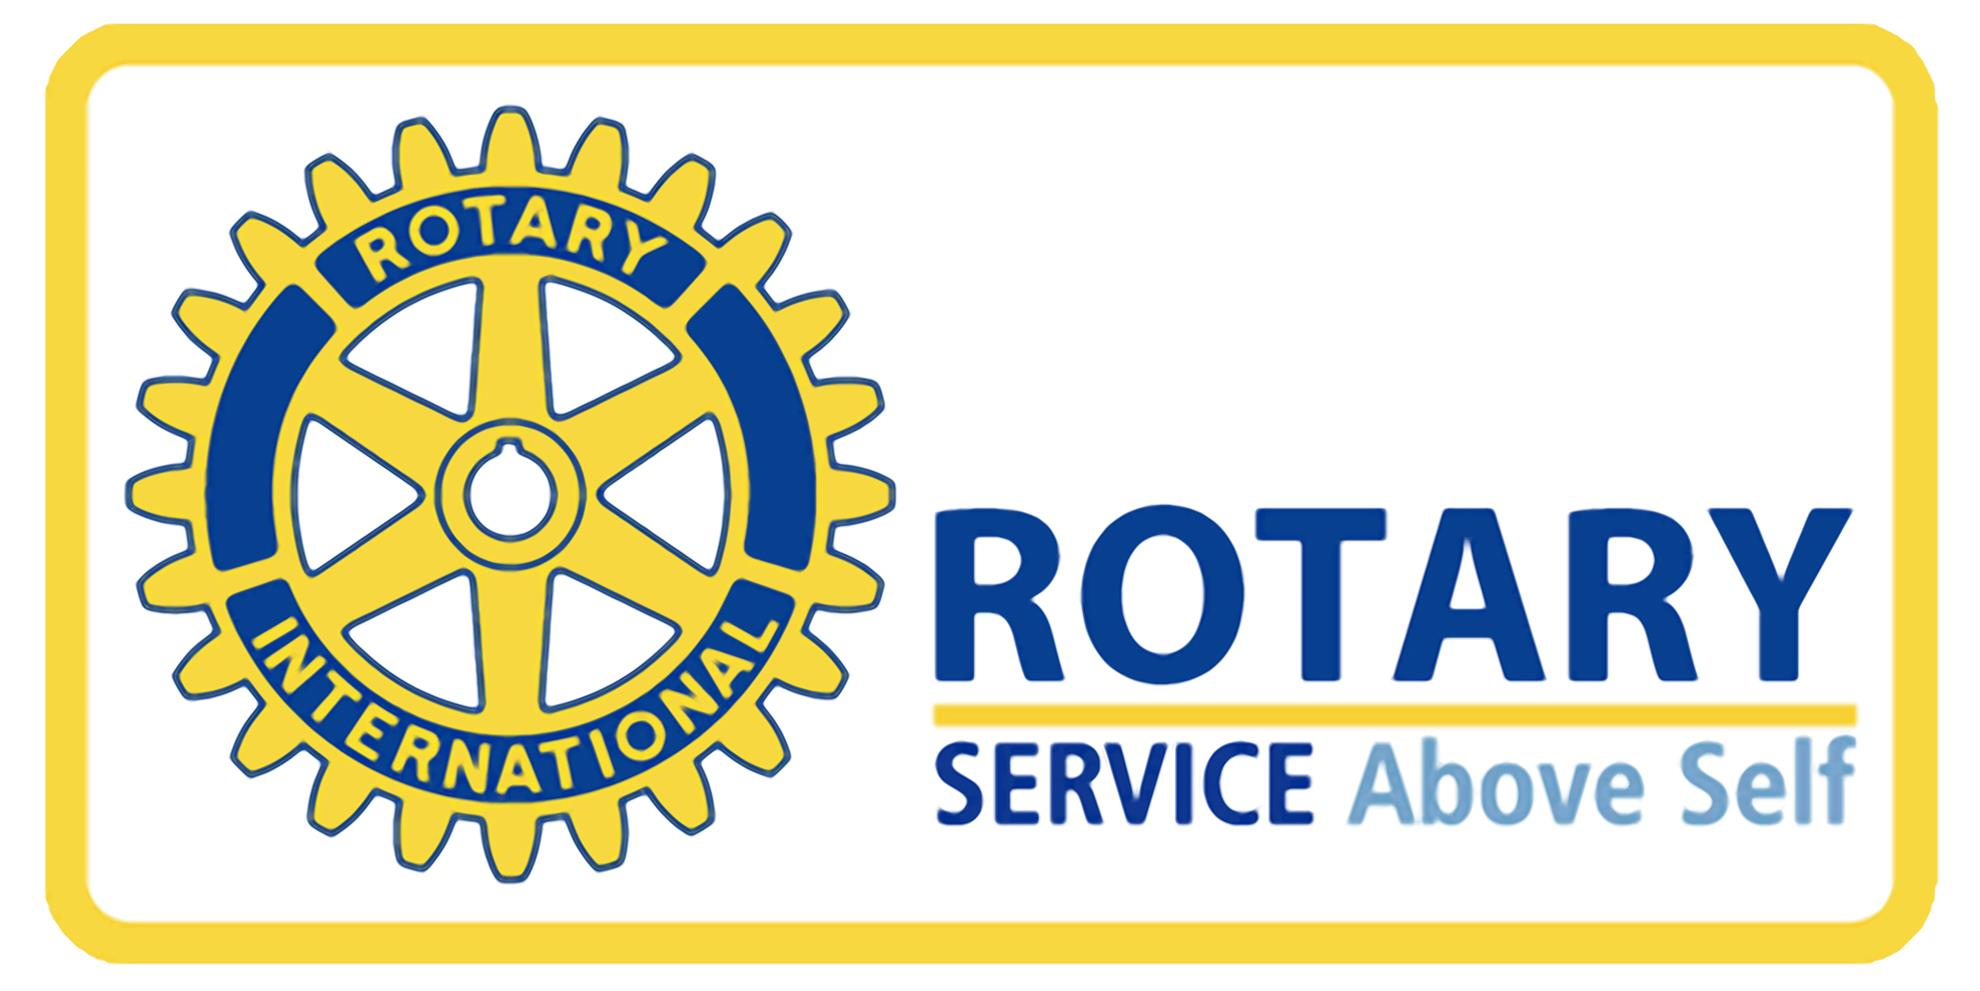 u201cservice above self u201d is not just a logo  rotary club of helping others clip art free images helping others clipart images